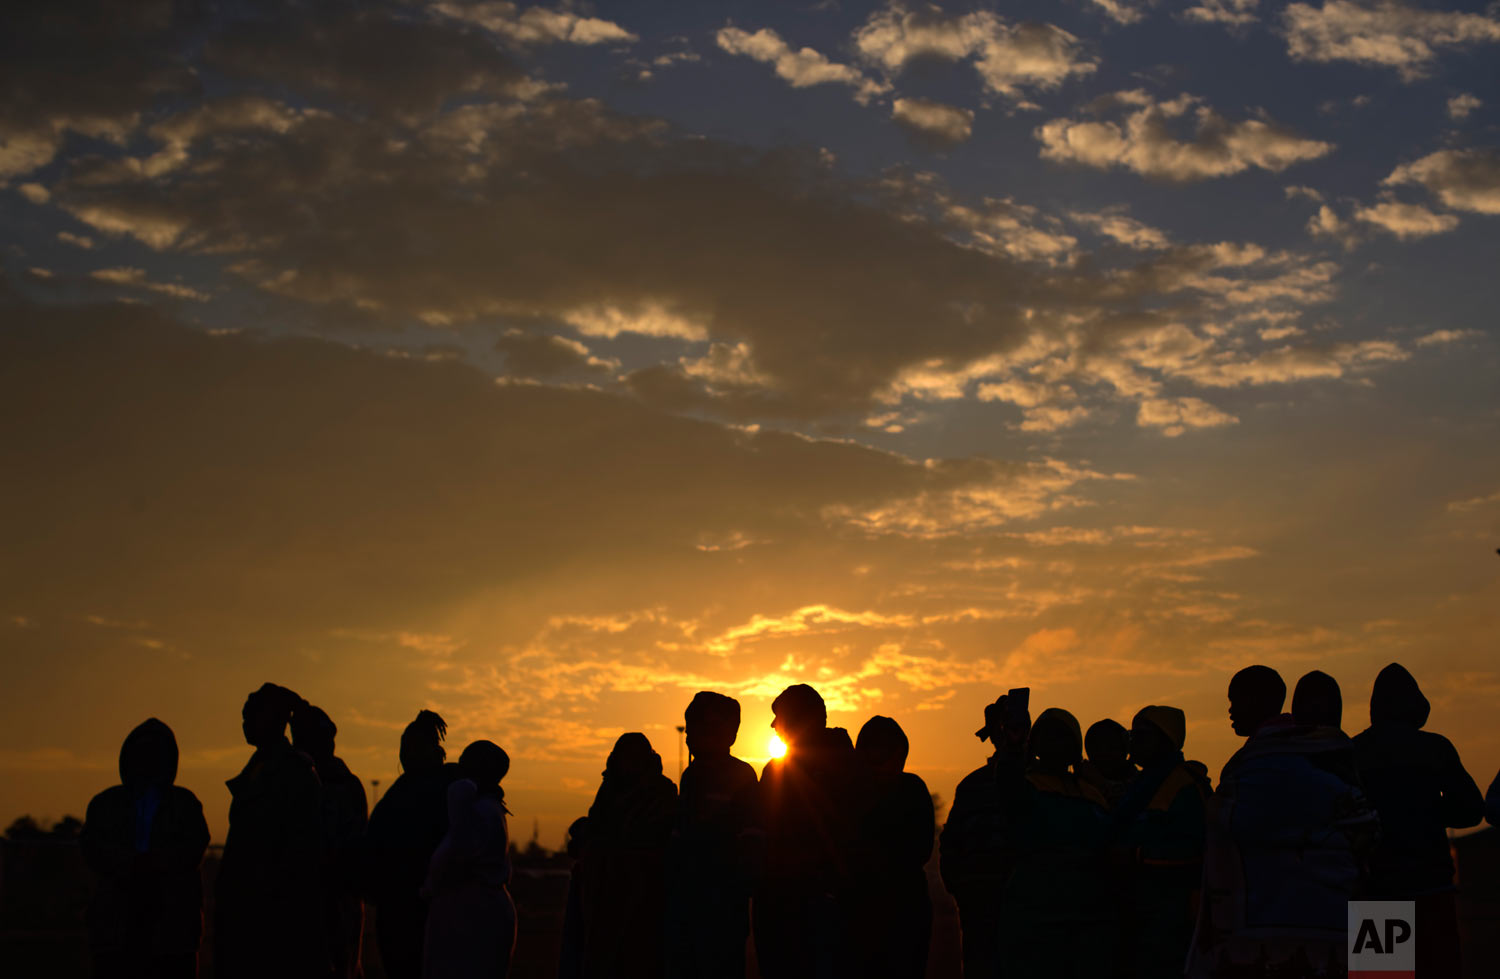 South Africans queue in the early morning cold to cast their votes in the mining settlement of Bekkersdal, west of Johannesburg, in South Africa, May 8, 2019. (AP Photo/Ben Curtis)